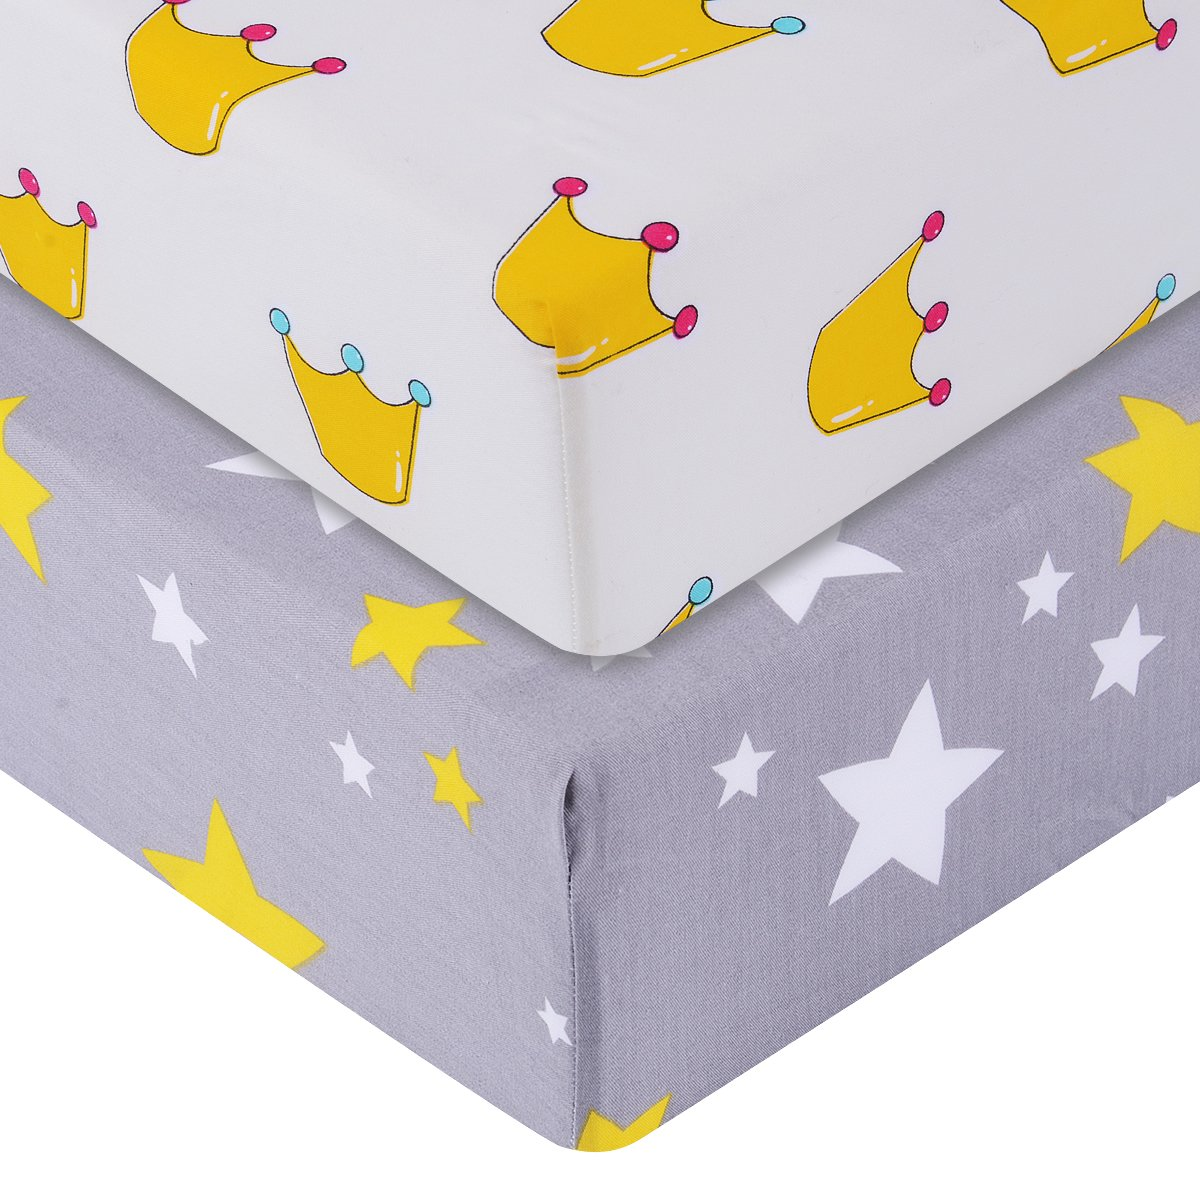 Final Home 2-Pack Pre-washed 100% Cotton Muslin Fitted Crib Sheet 52 x 28 (Star & Crown) Yichang PuLuSiTe